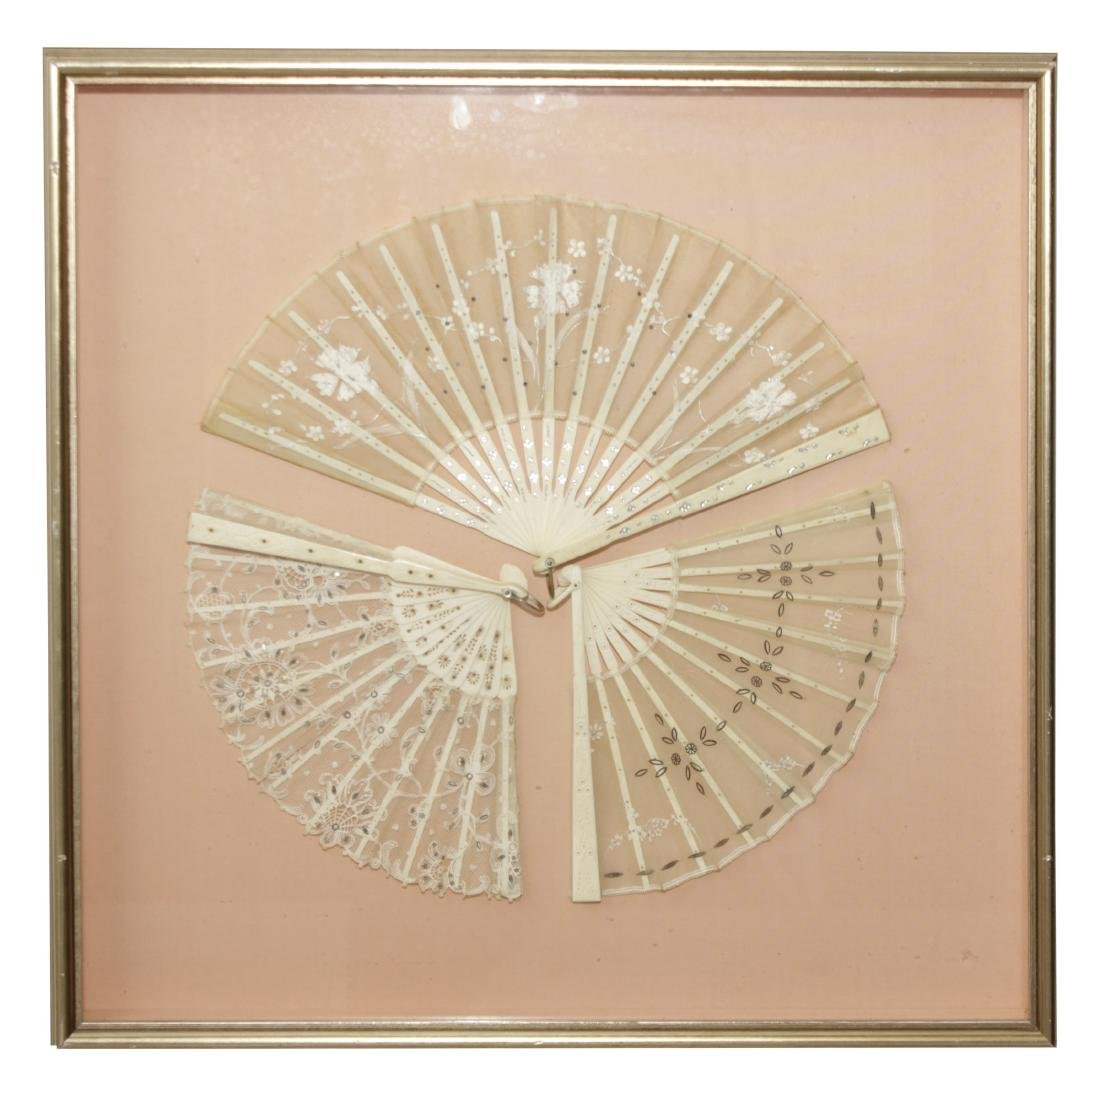 Framed Group of Three Fans